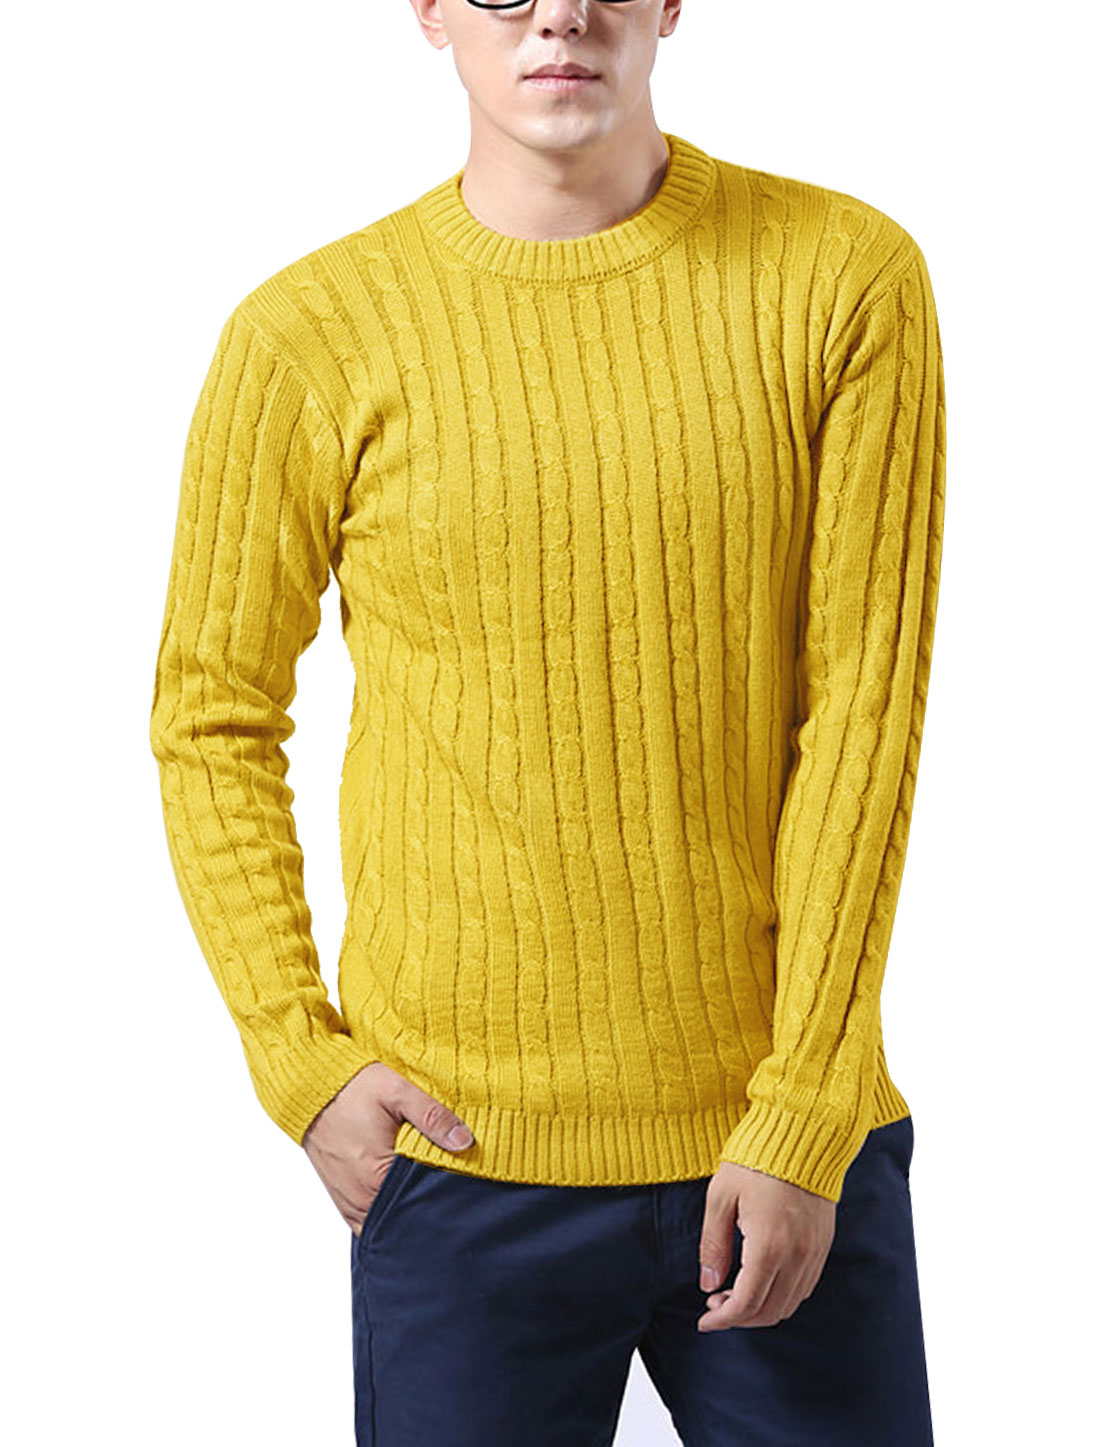 Men Korean Style Crew Neck Braided Casual Sweater Yellow S